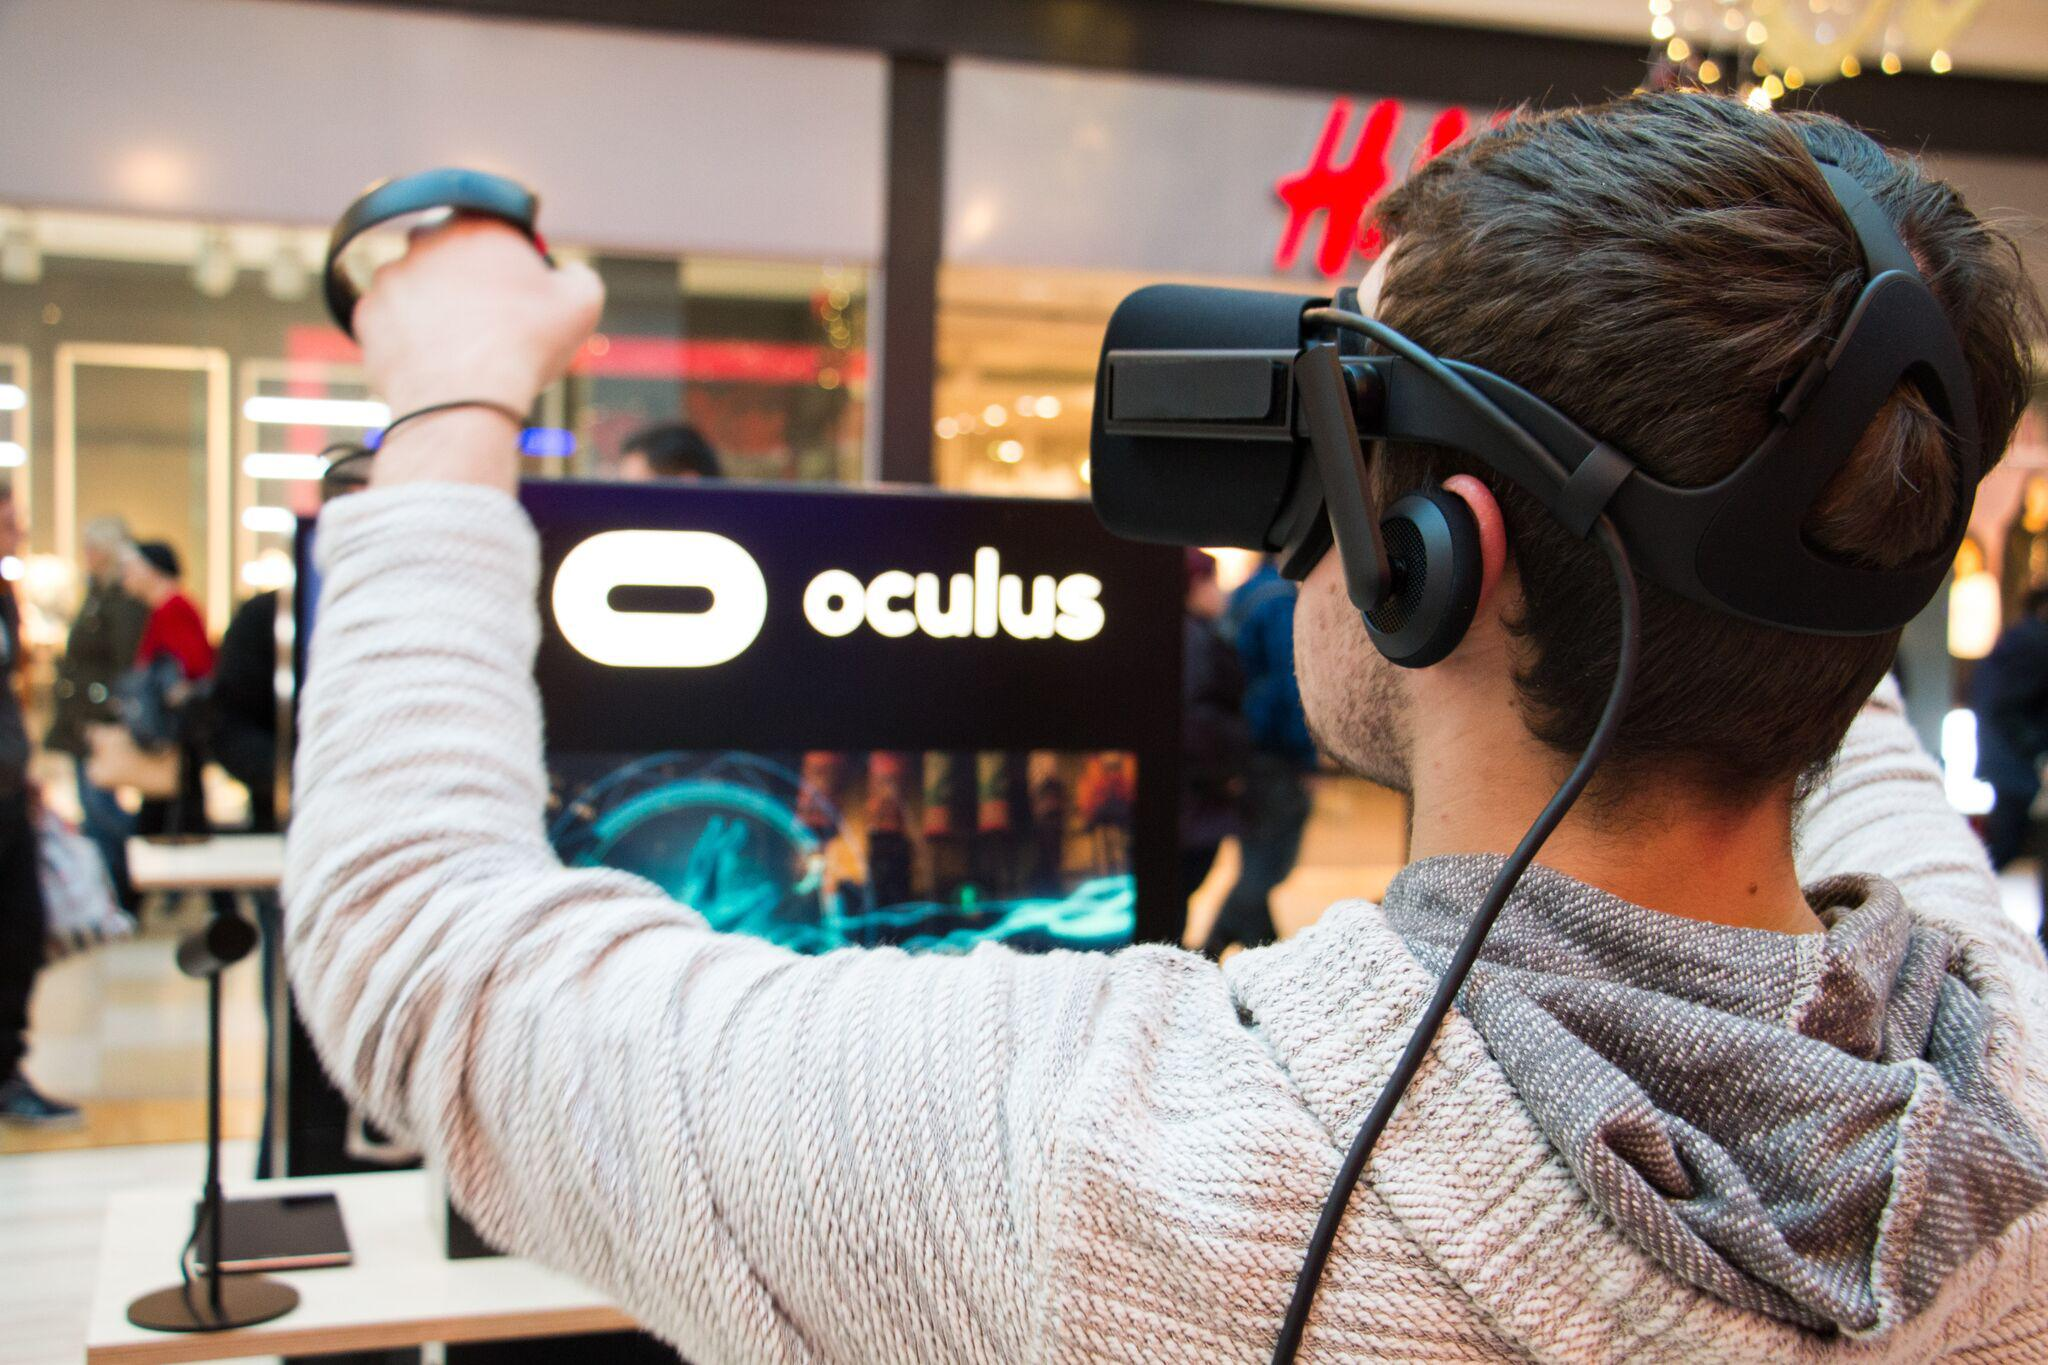 Oculus In Store & Mall Tour